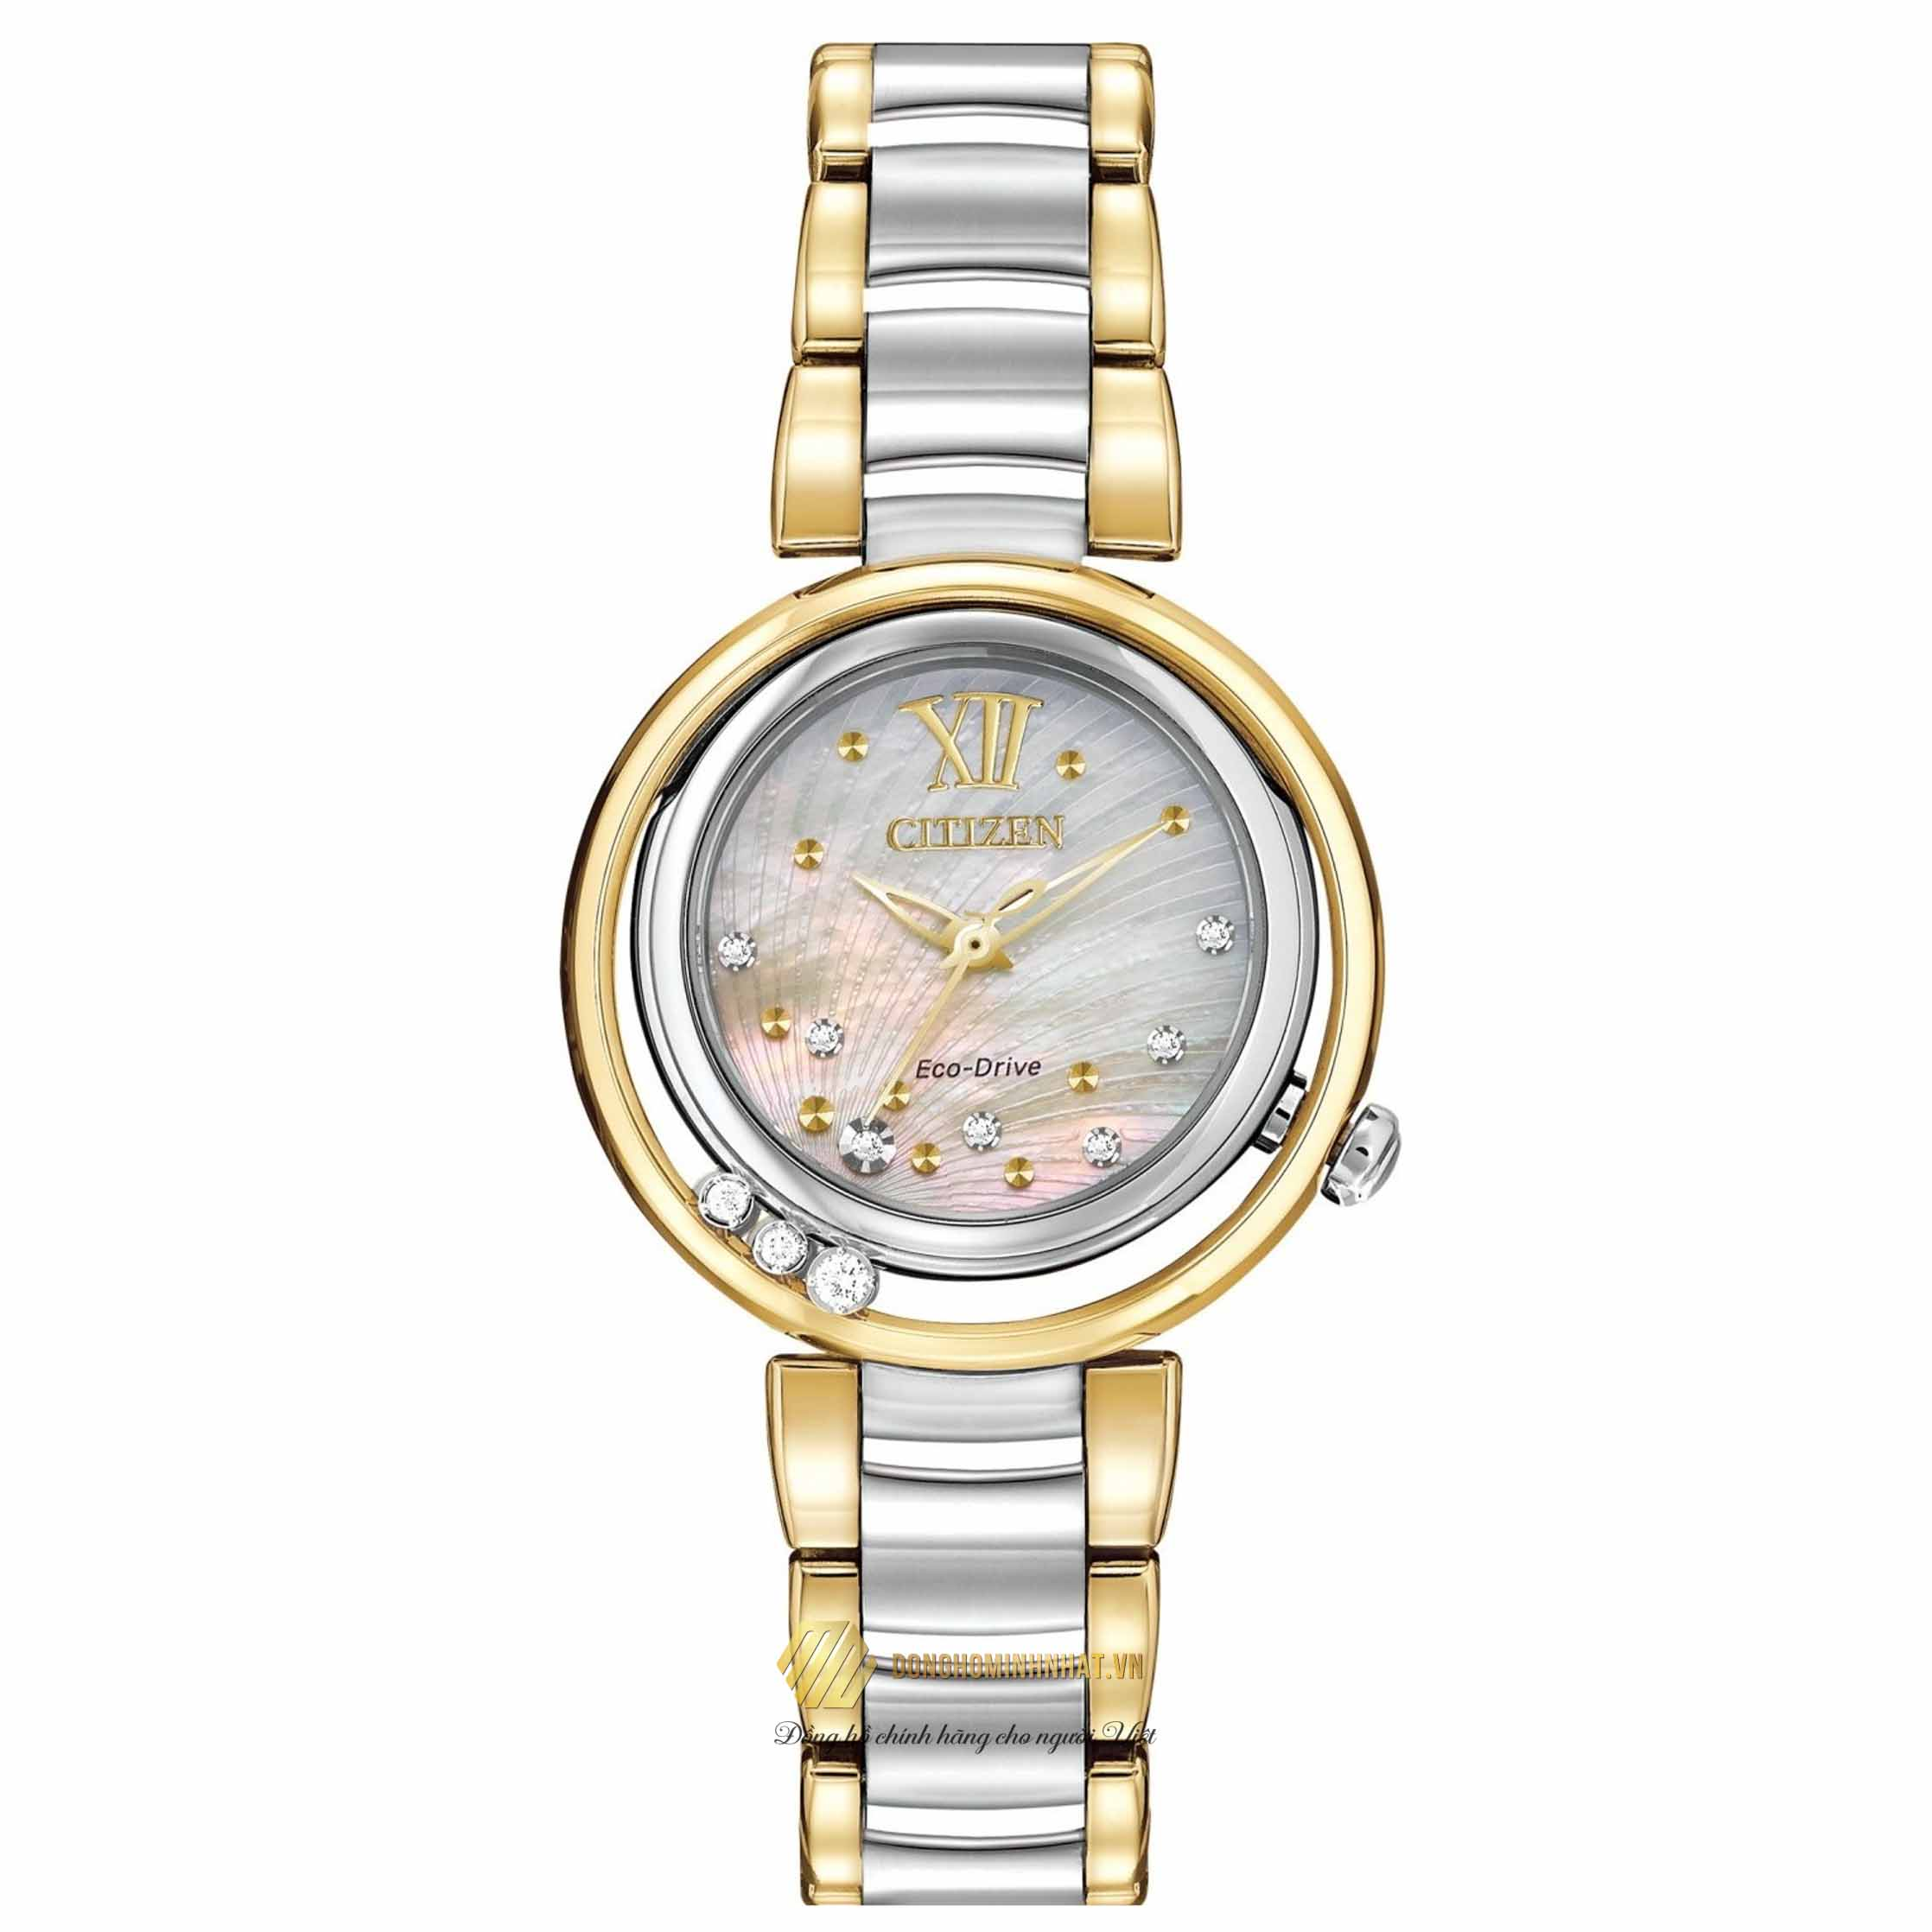 ĐỒNG HỒ CITIZEN EM0324-58D L SUNRISE DIAMOND WOMEN'S